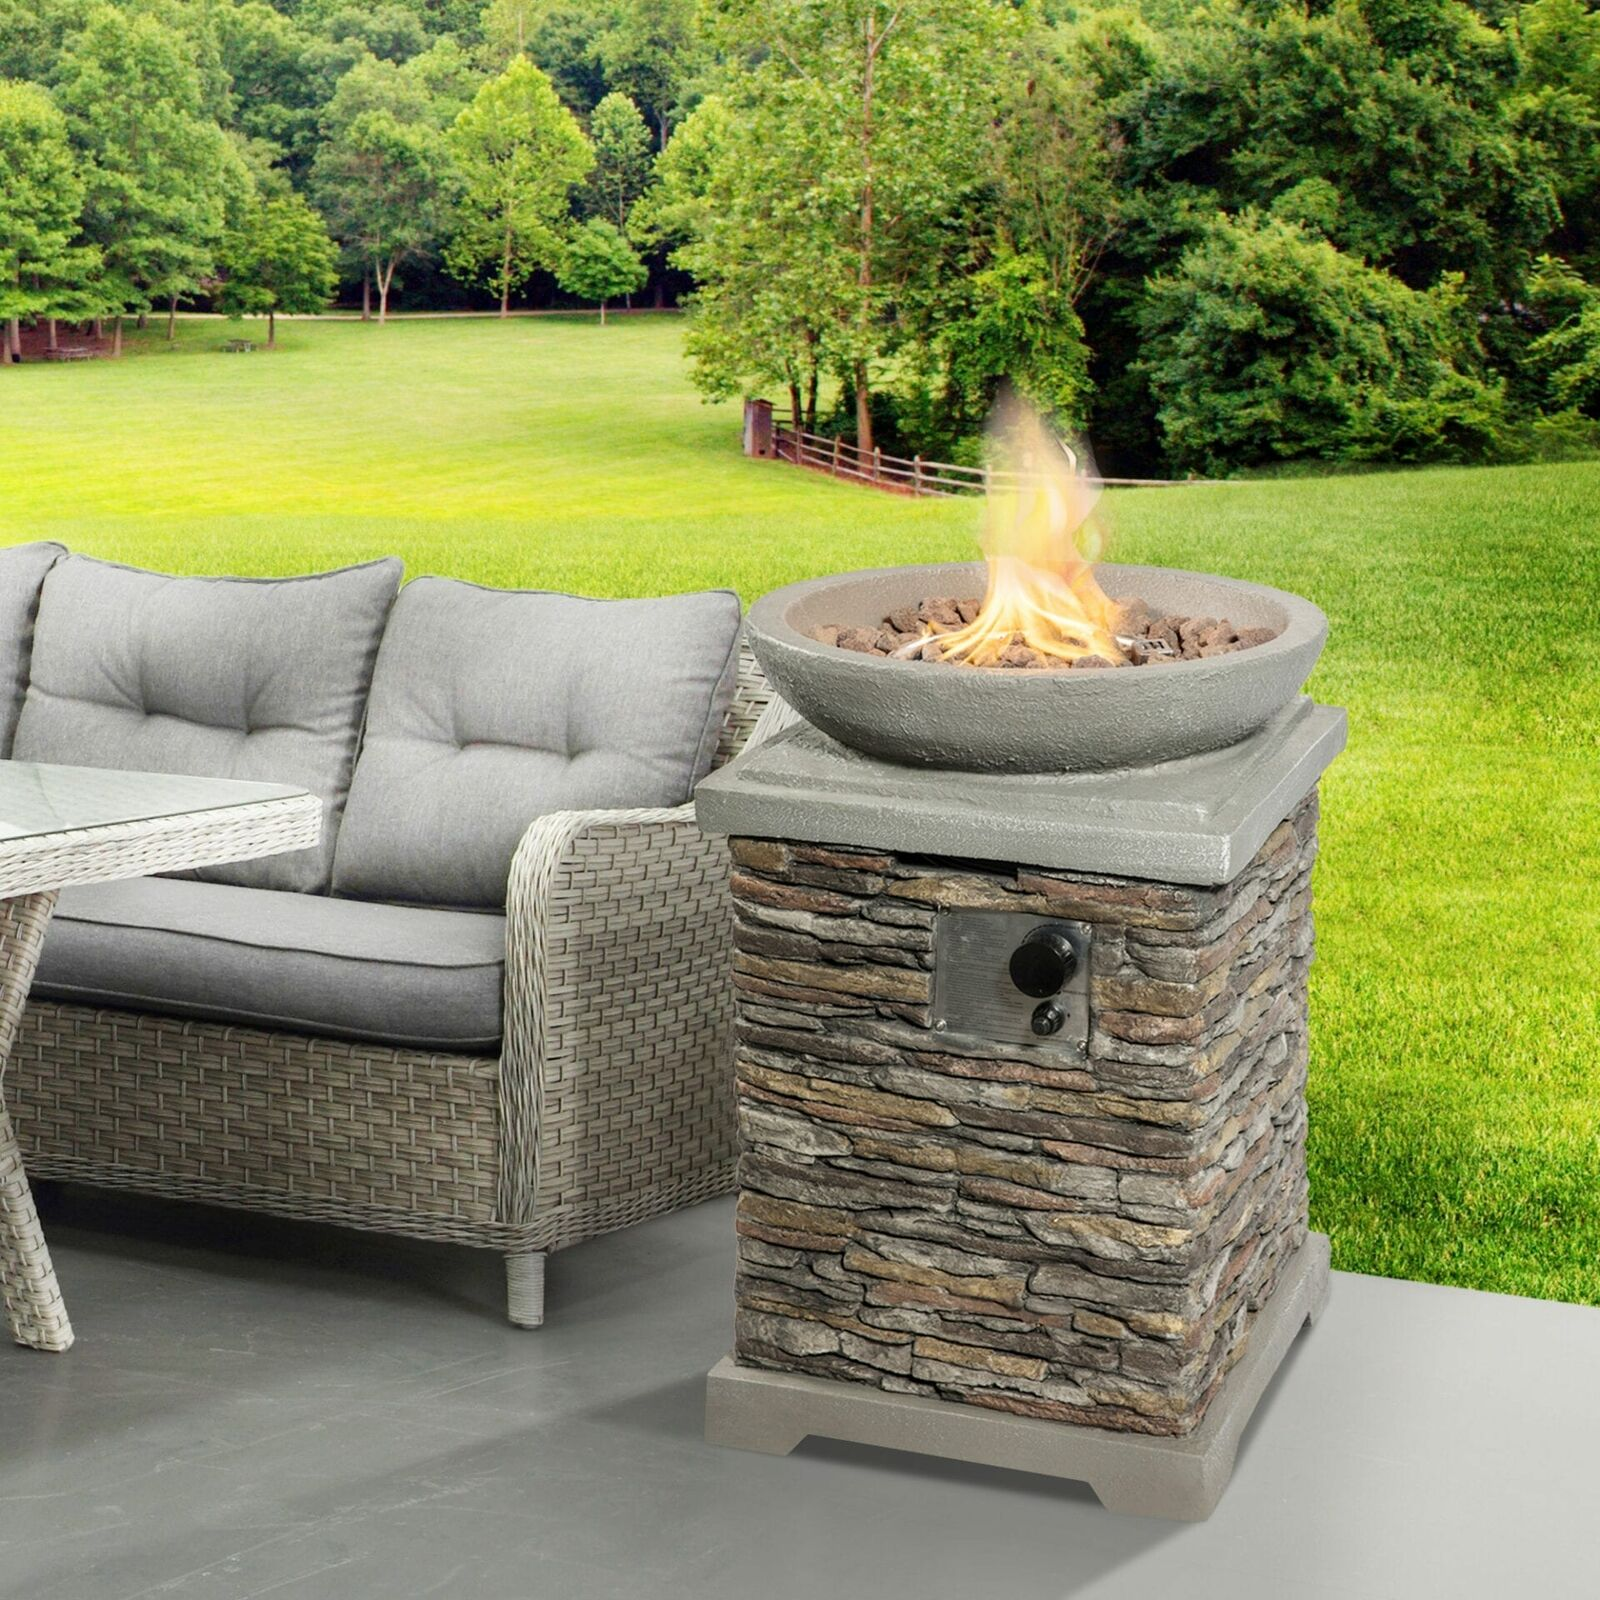 Peaktop Firepit Outdoor Gas Fire Pit Stone With Lava Rock & Cover HF29308AA-UK